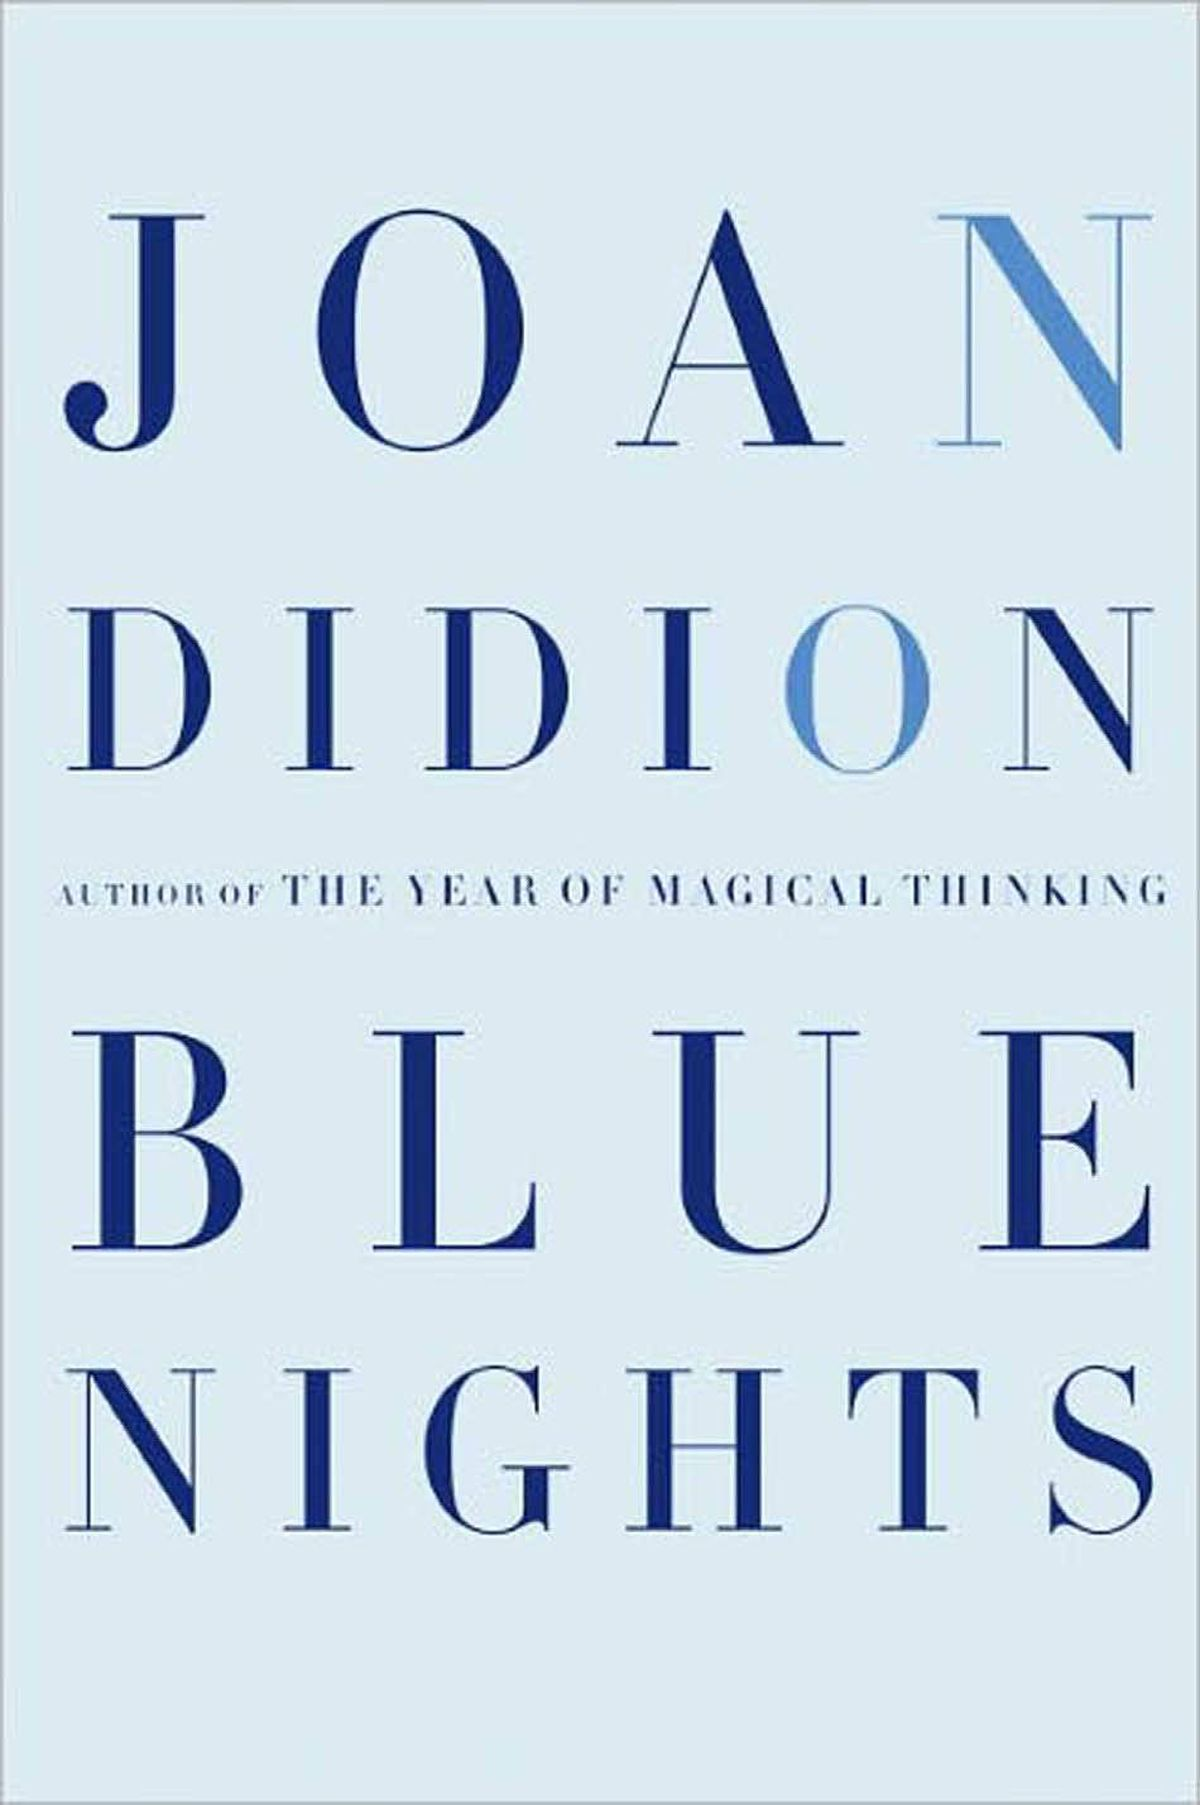 BLUE NIGHTS By Joan Didion (Knopf) This book about the death of Didion's daughter, Quintana, is heartbreaking in part because it is somewhat jumbled. The shards of memory, shimmering as they are, do not finally fit together, quite. Instead, in its elliptical, kinetic way, the book offers something braver than coherence: a raw and rare integrity that resists resolution. – Leah Hager Cohen